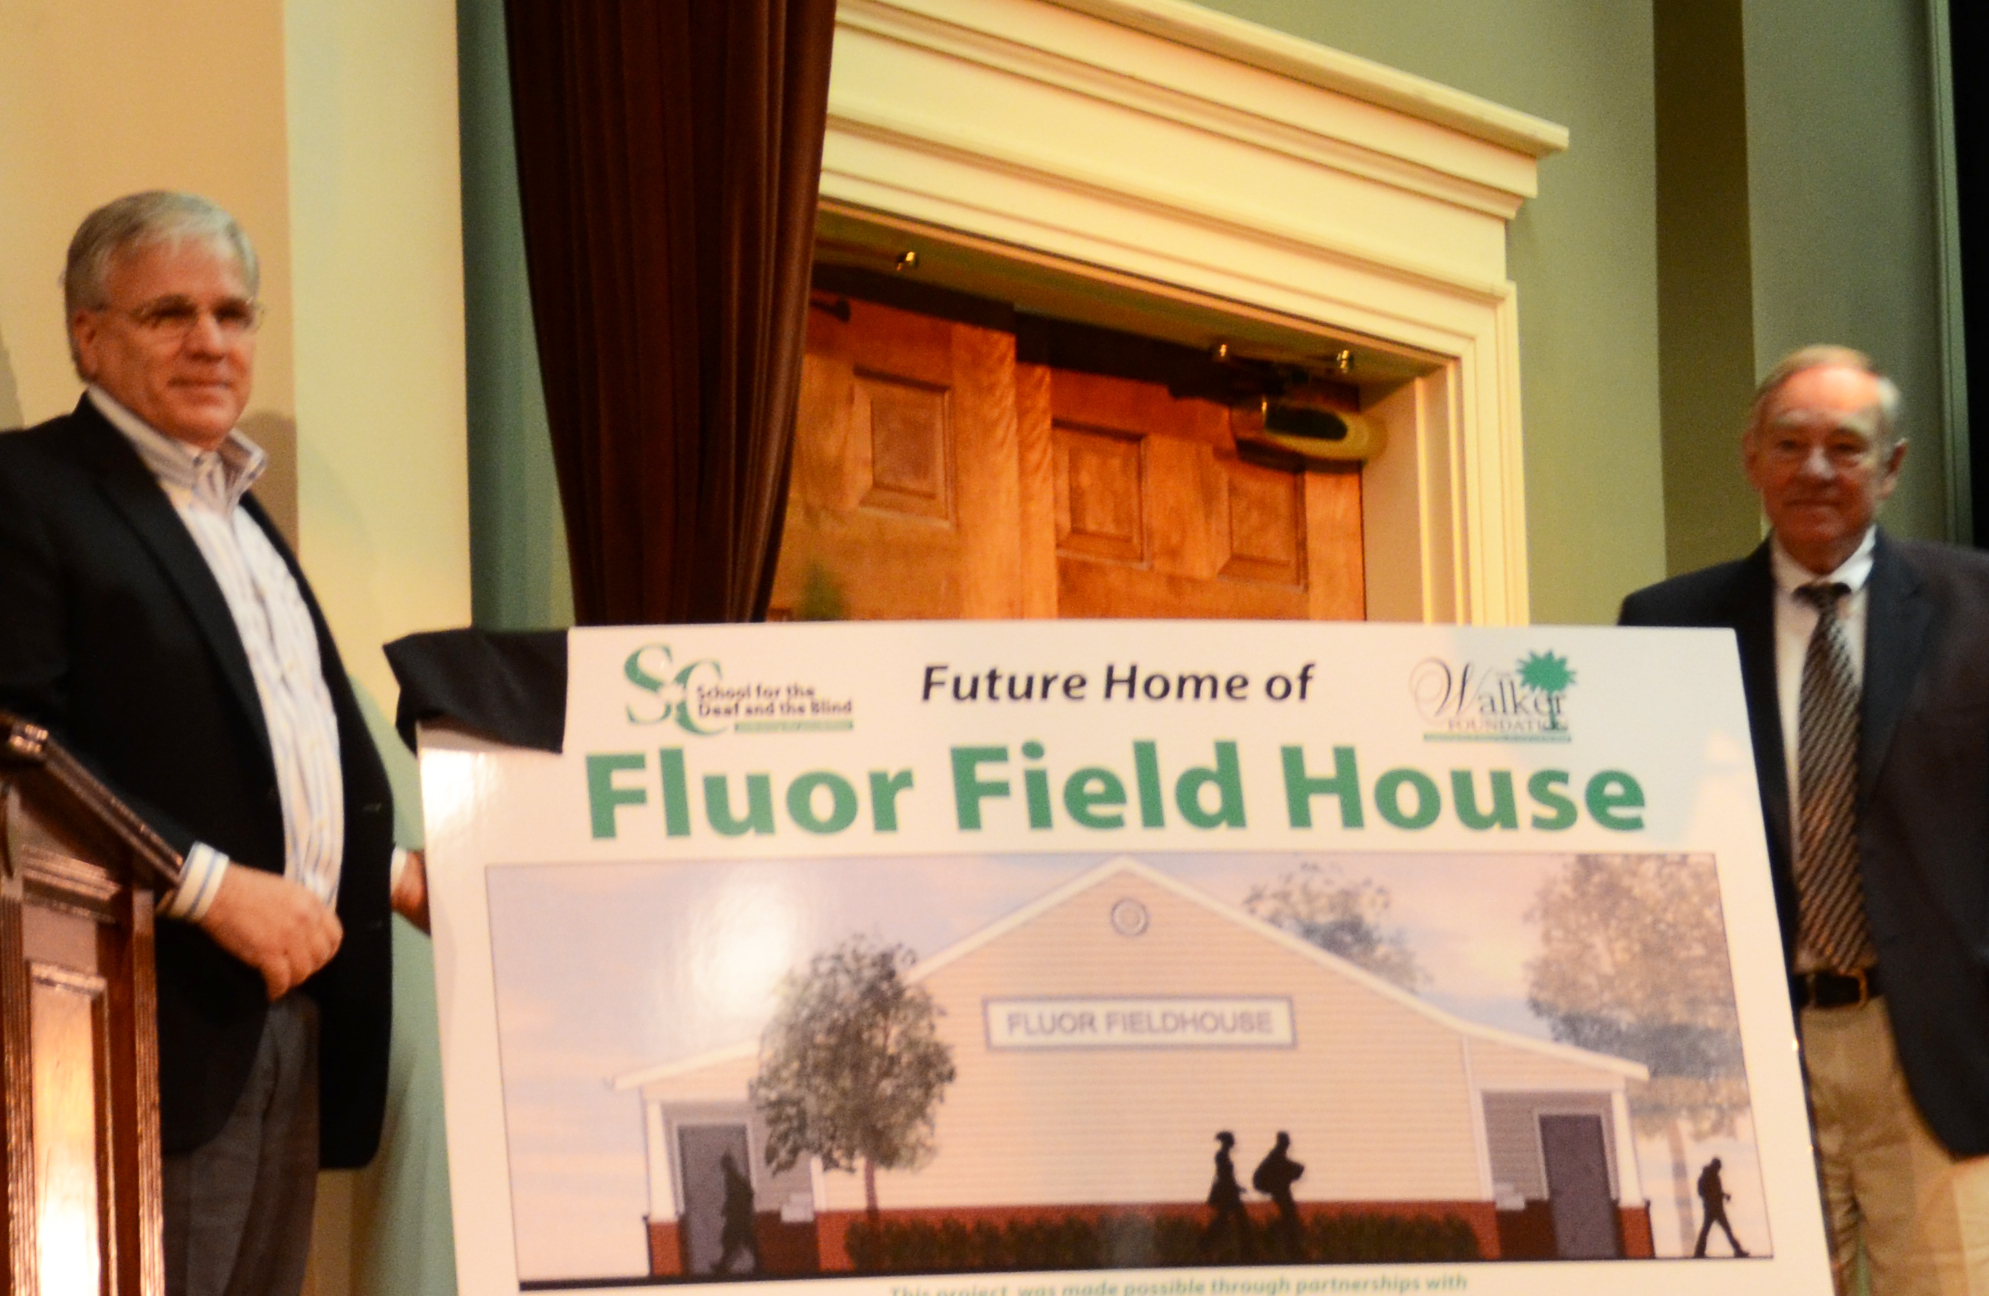 Don Finkell and Bobby Dobson unveiled the sign announcing the Fluor Field House.